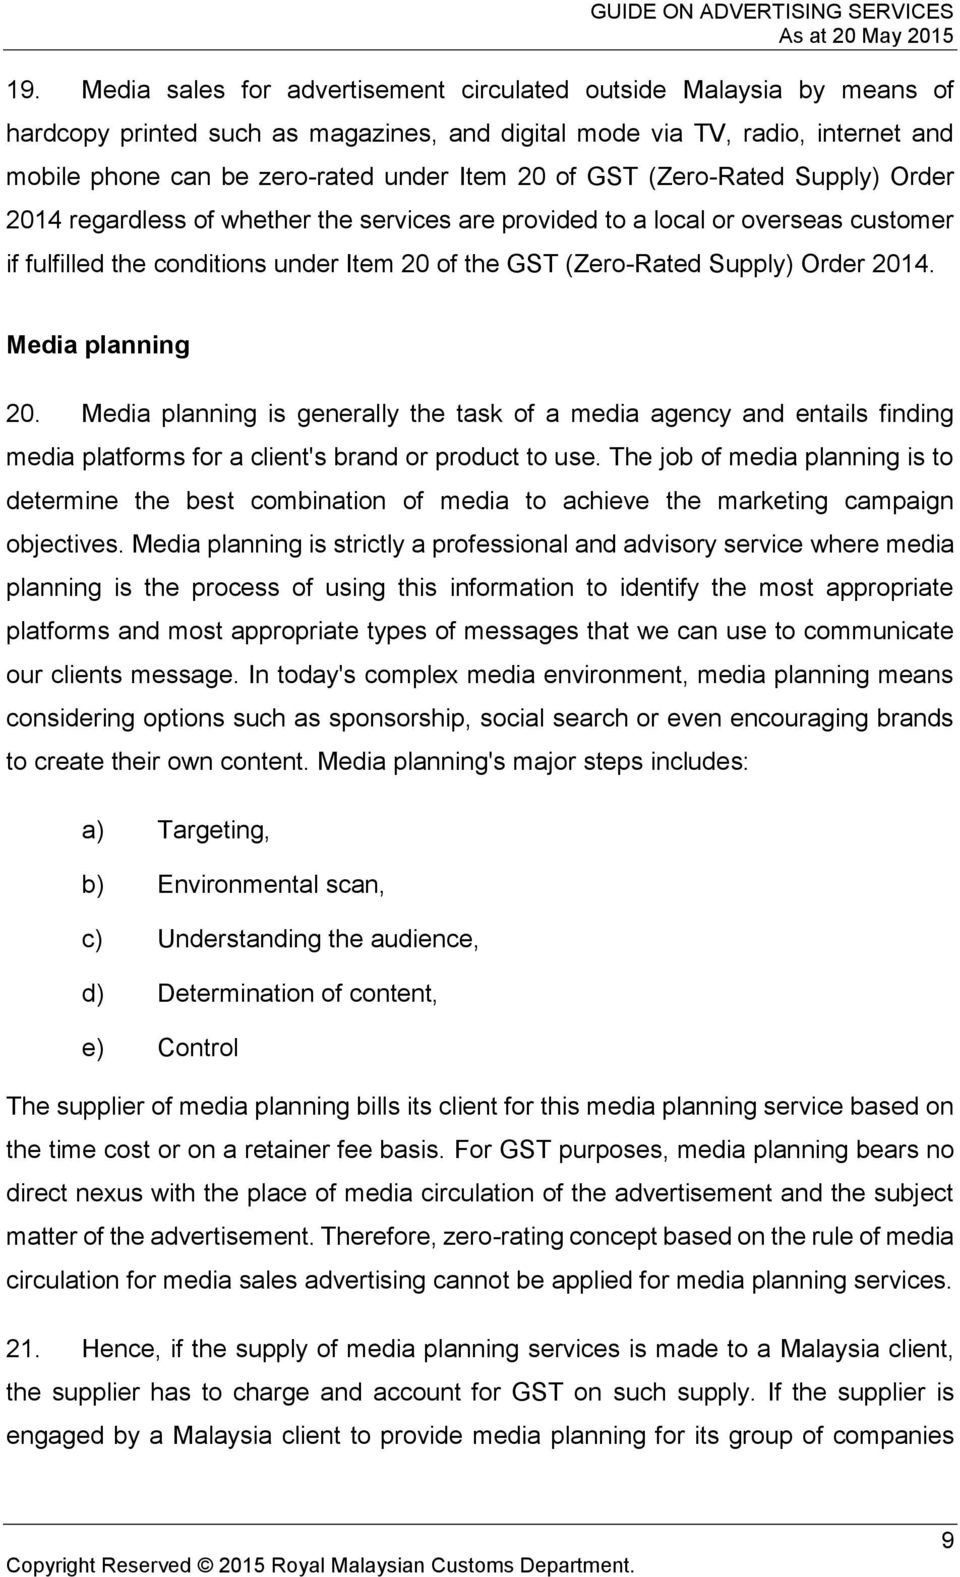 2014. Media planning 20. Media planning is generally the task of a media agency and entails finding media platforms for a client's brand or product to use.